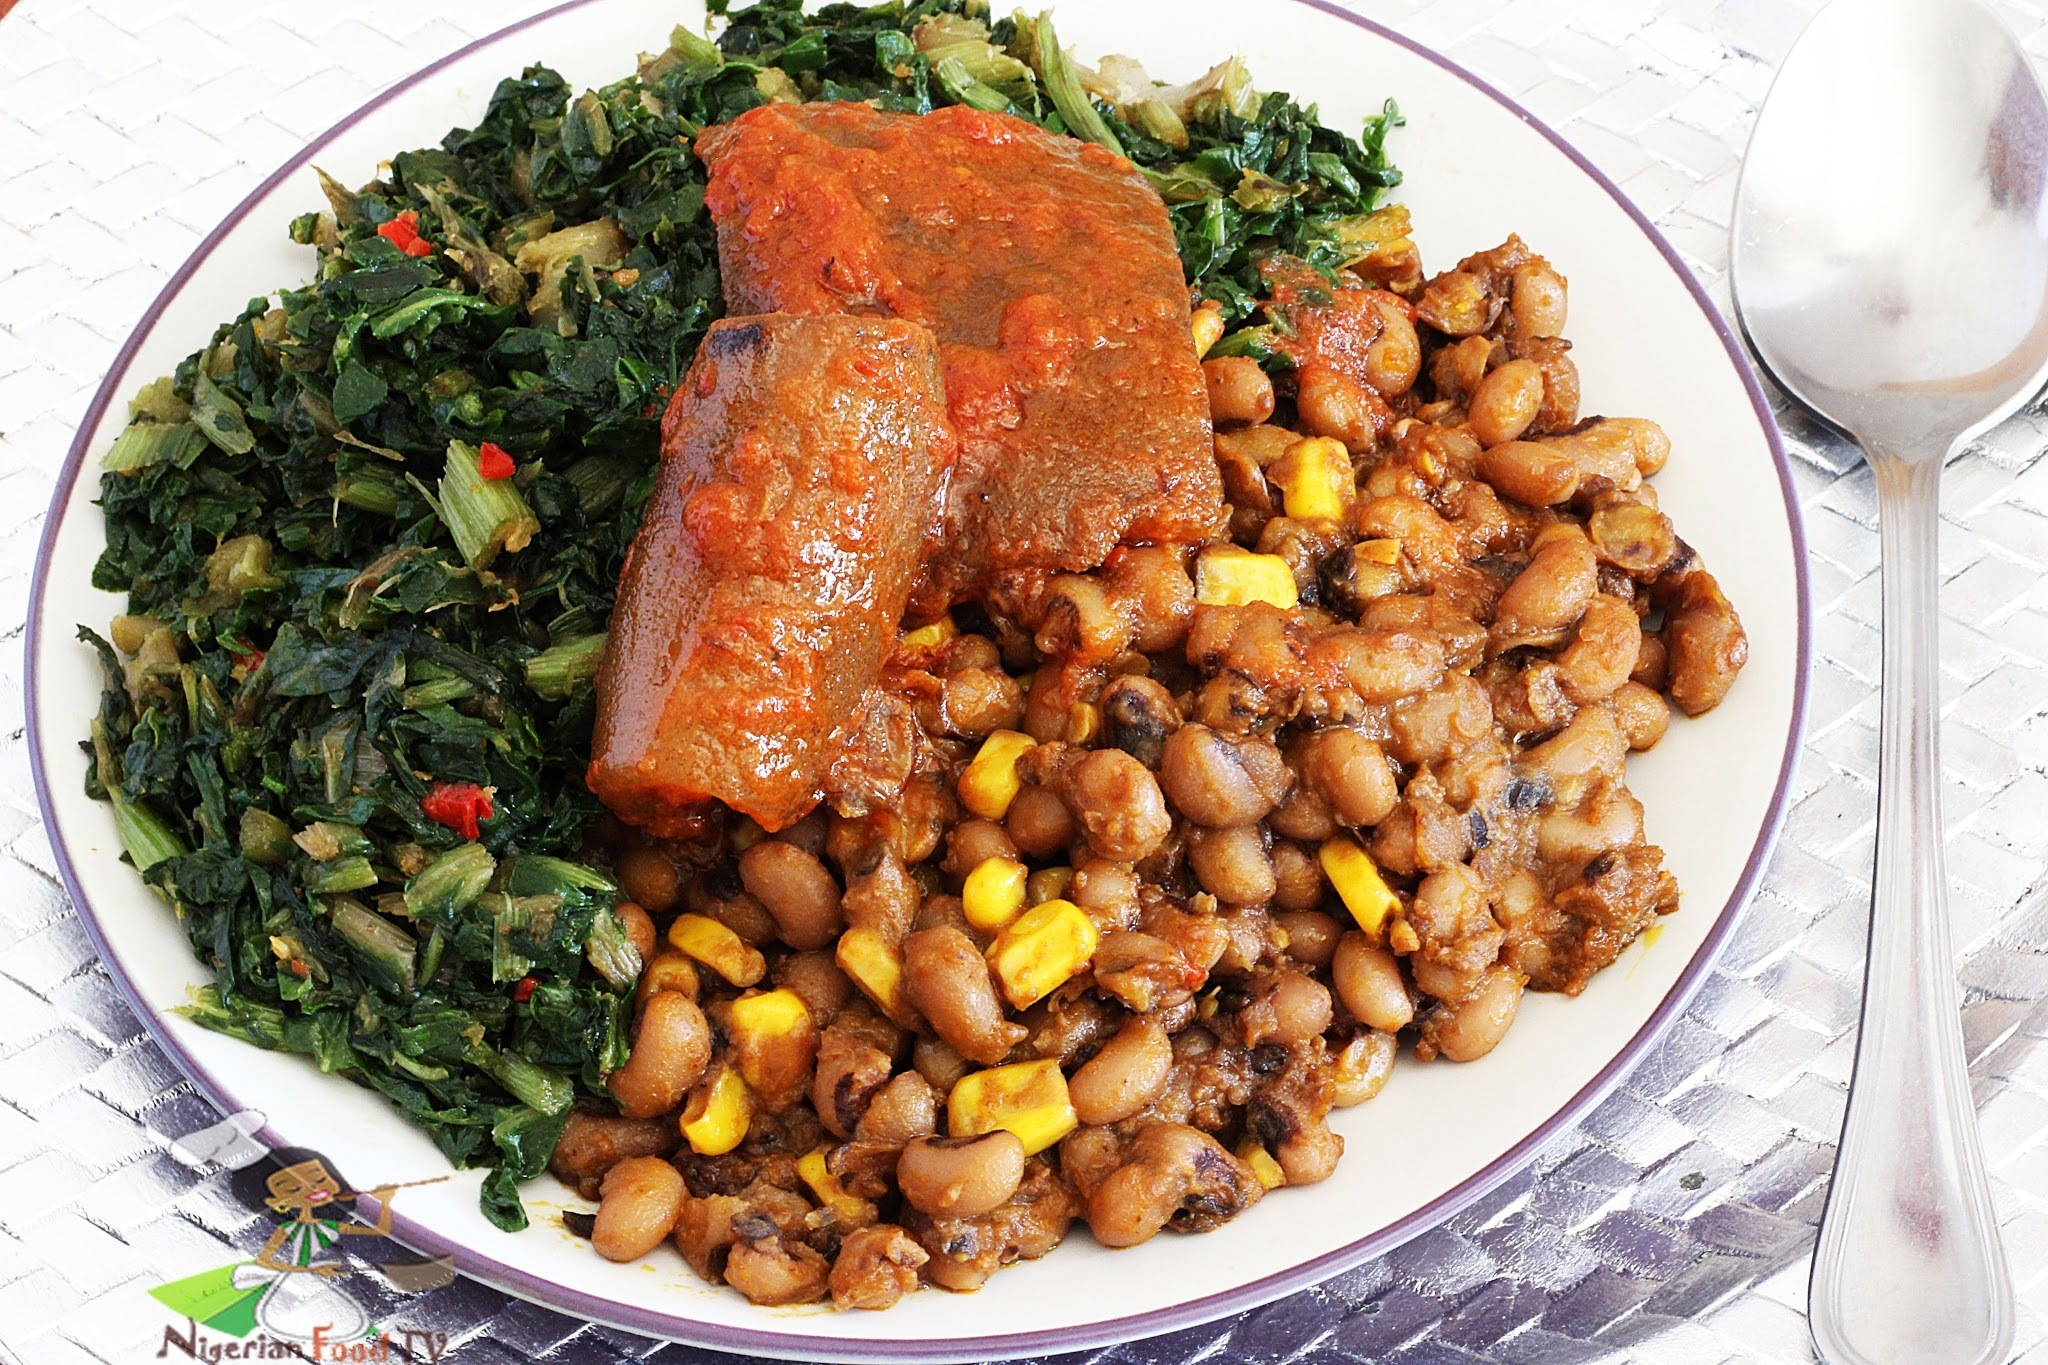 Stir-fried Green Veggies with Beans and Corn Porridge(Adalu)